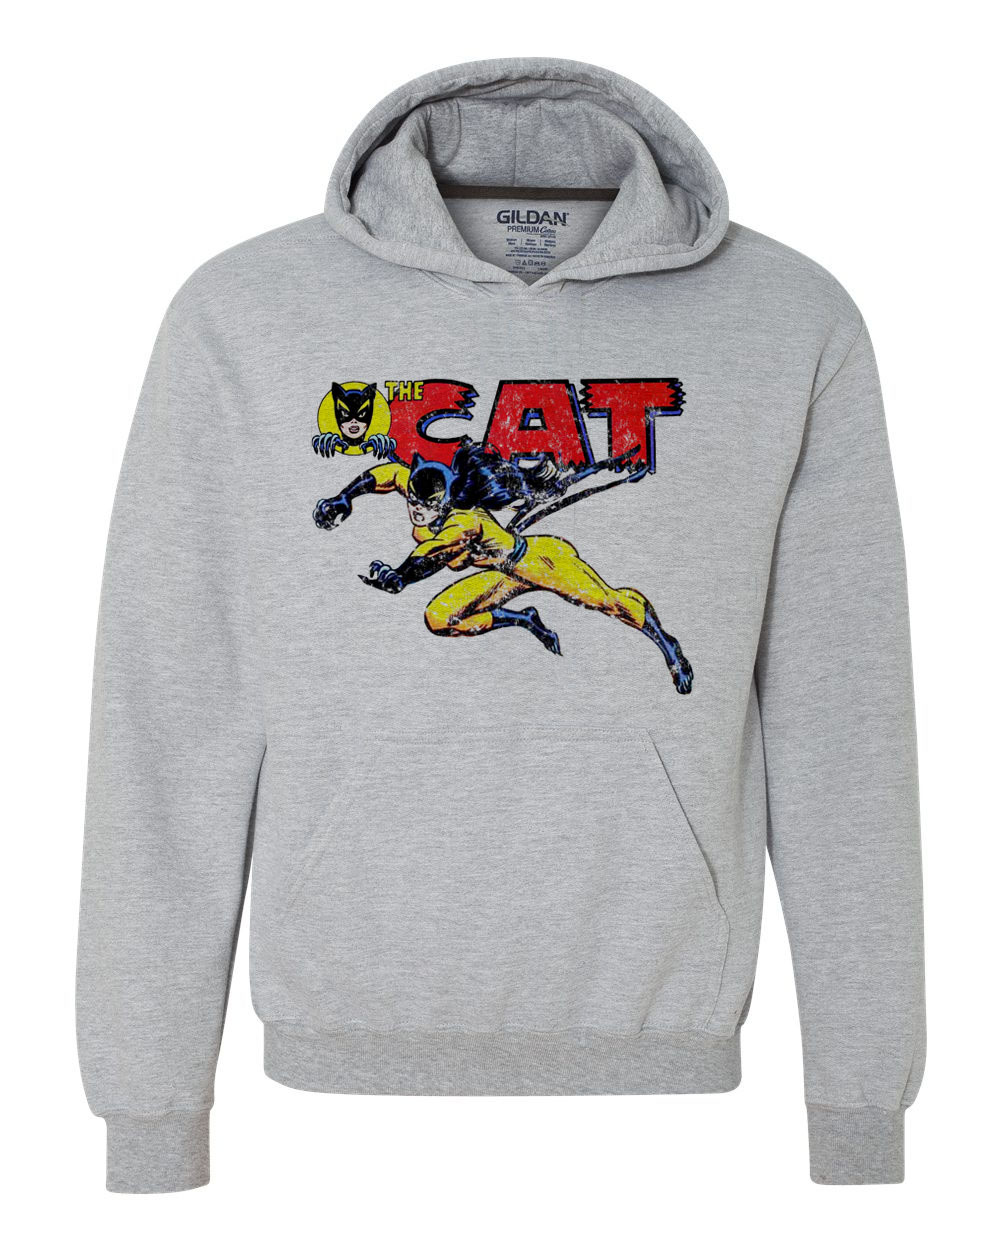 The cat marvel comics hoodie sweat shirt hell cat patsy walker for sale online graphic tee store